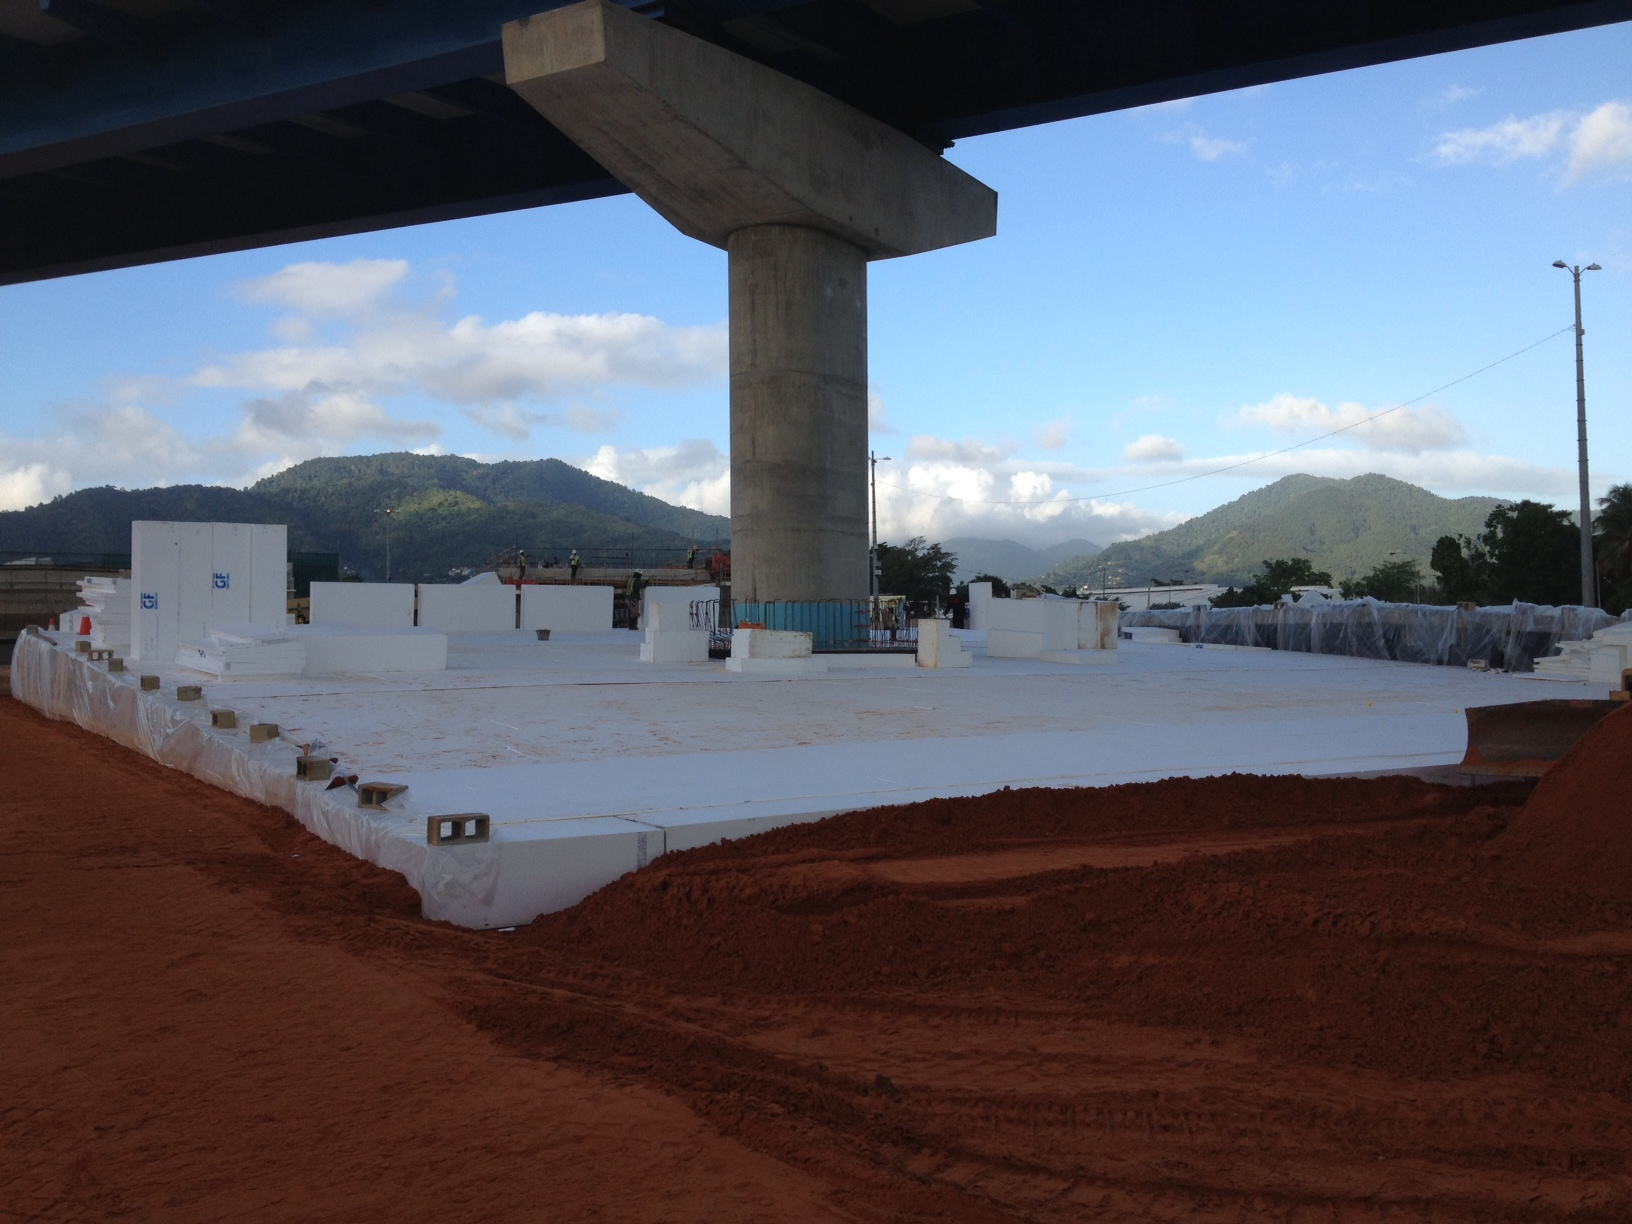 Working in the soft soils of Trinidad, the contractor specified EPS geofoam to reduce the load applied to the pile cap under the existing pier on this freeway interchange project.